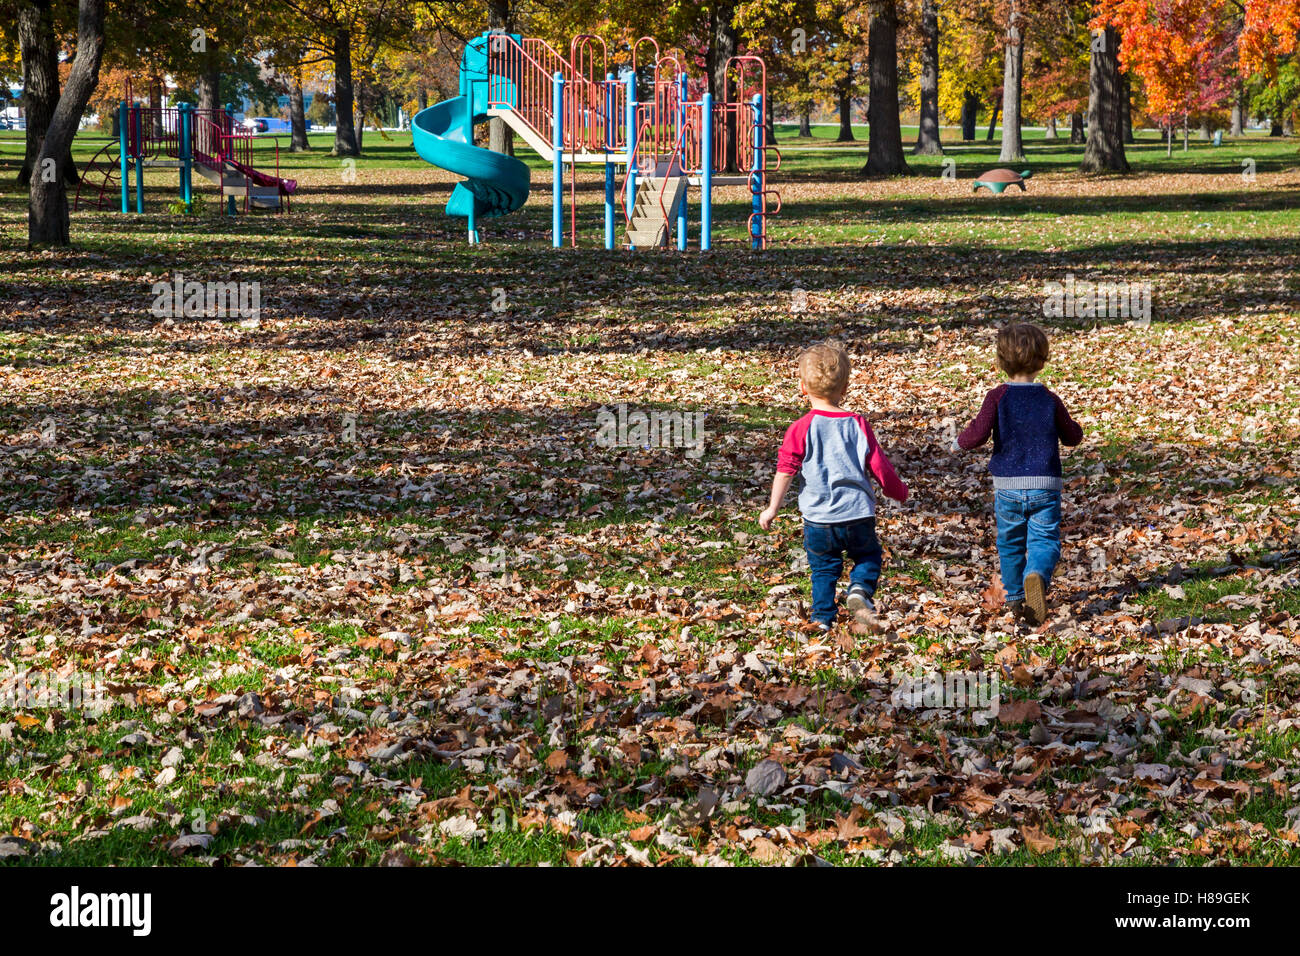 Detroit, Michigan - Two- and three-year-old toddlers run towards a playground on Belle Isle. - Stock Image